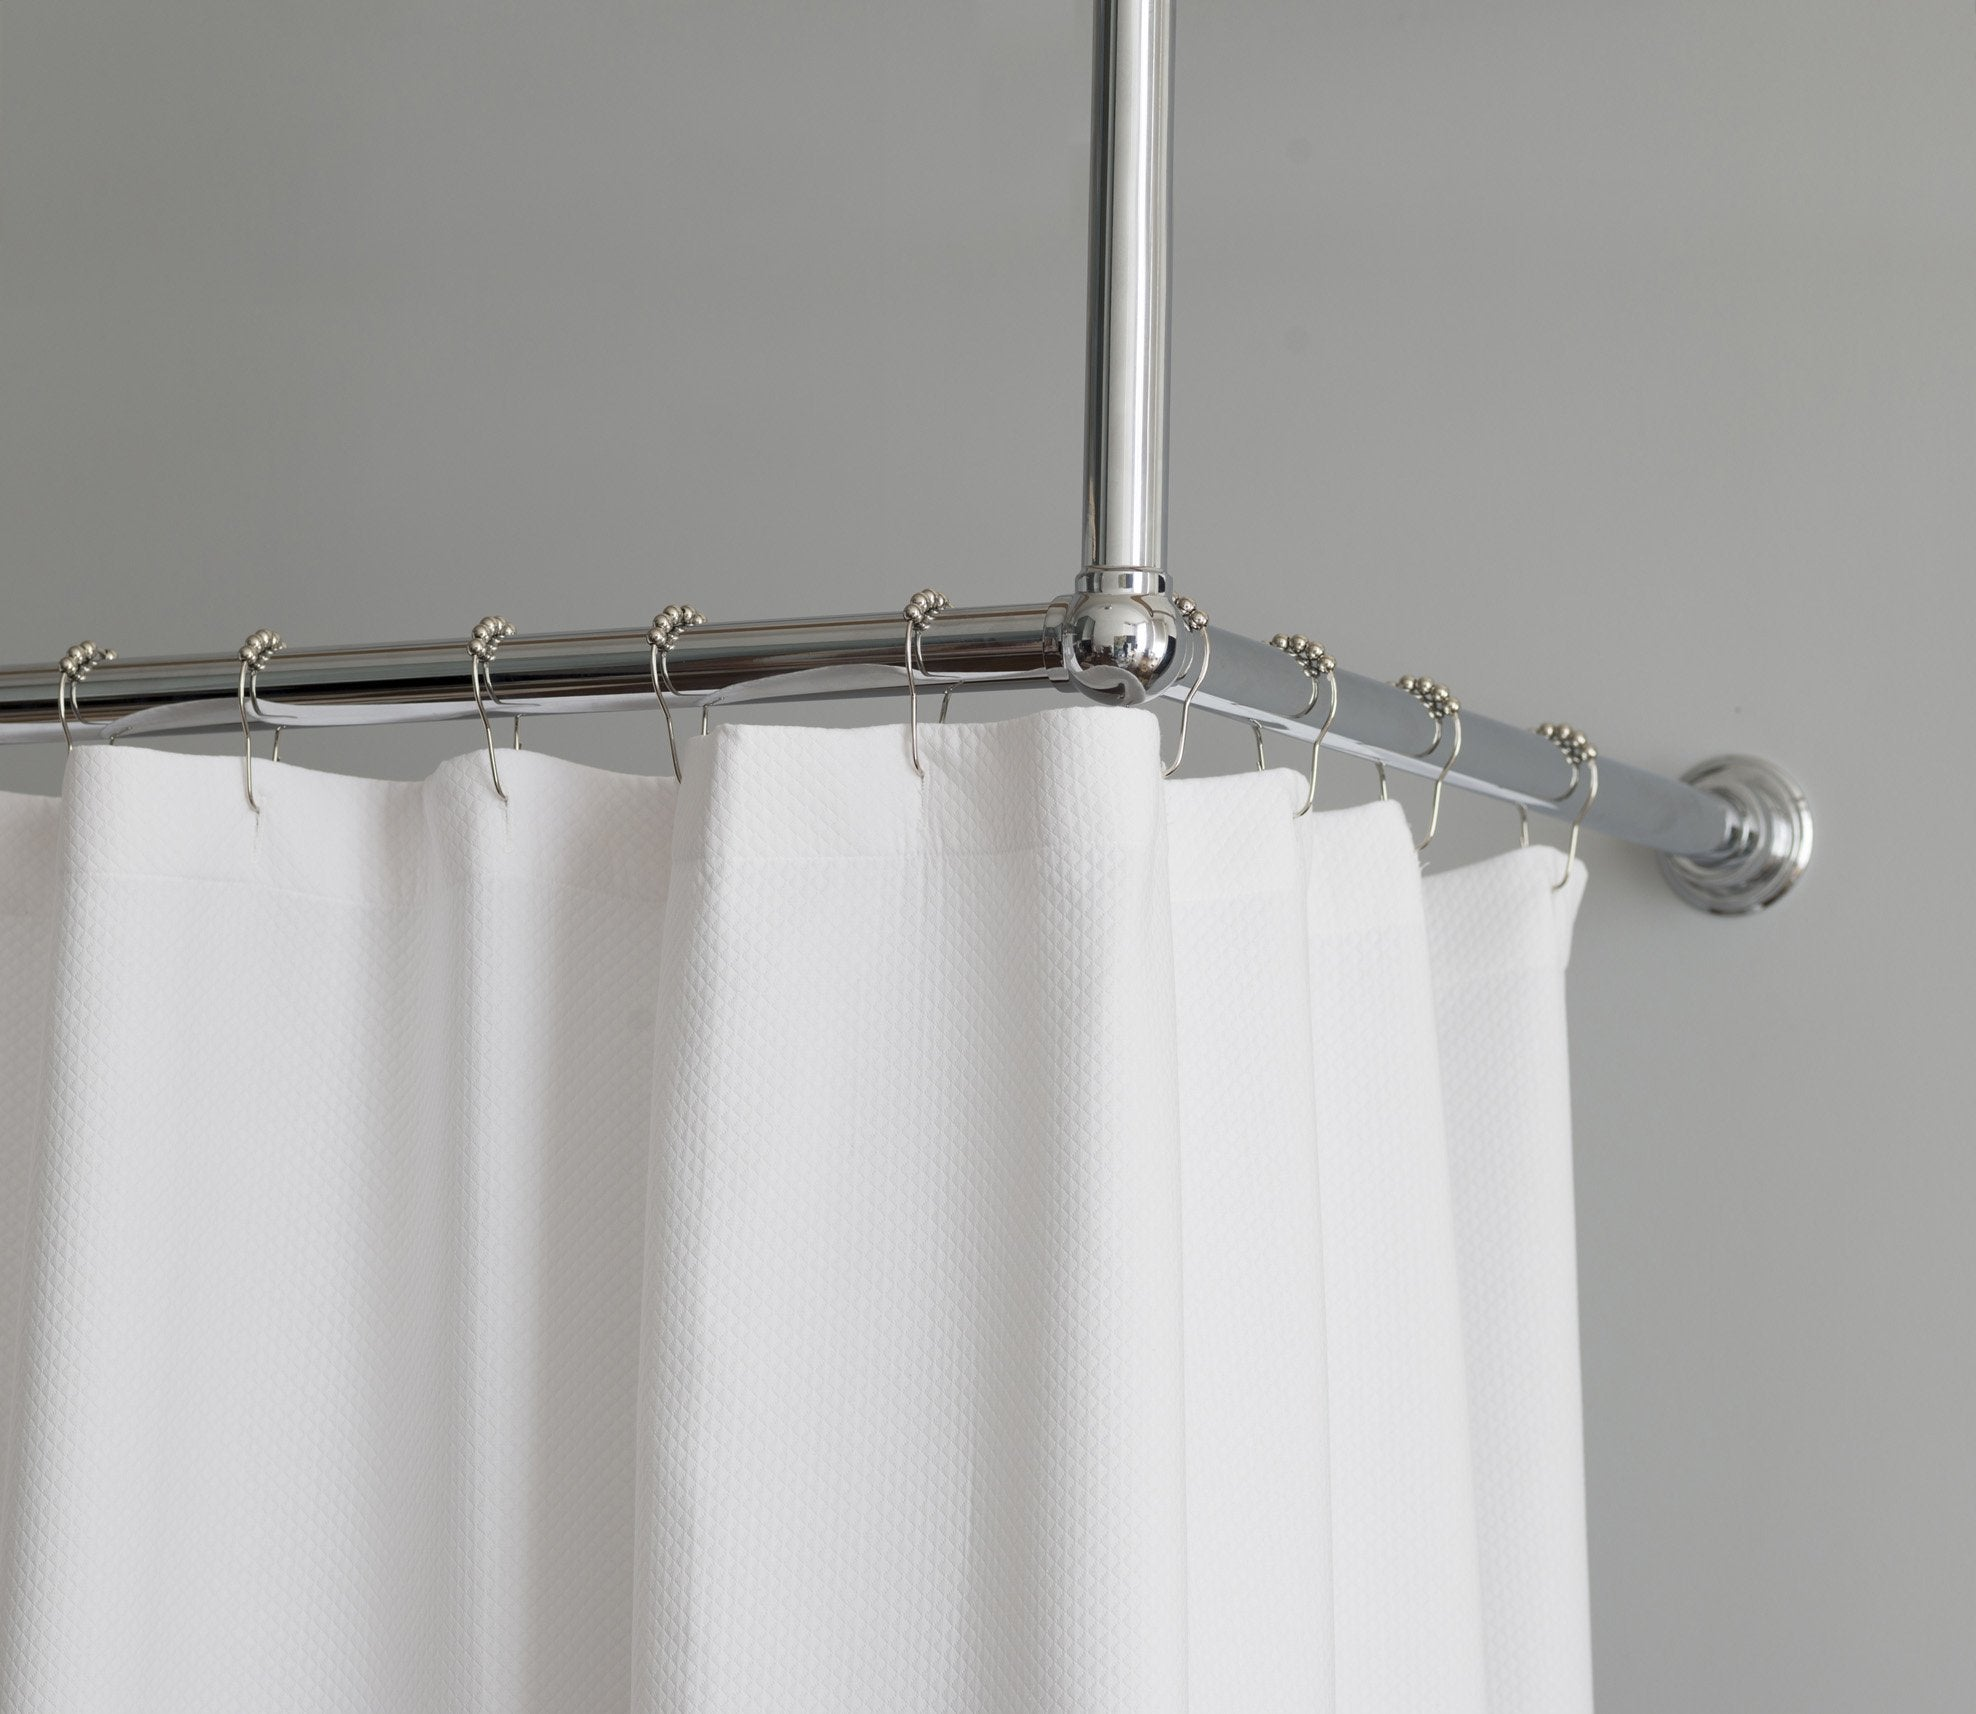 Shower Curtain Rail L Shape Rail Balineum